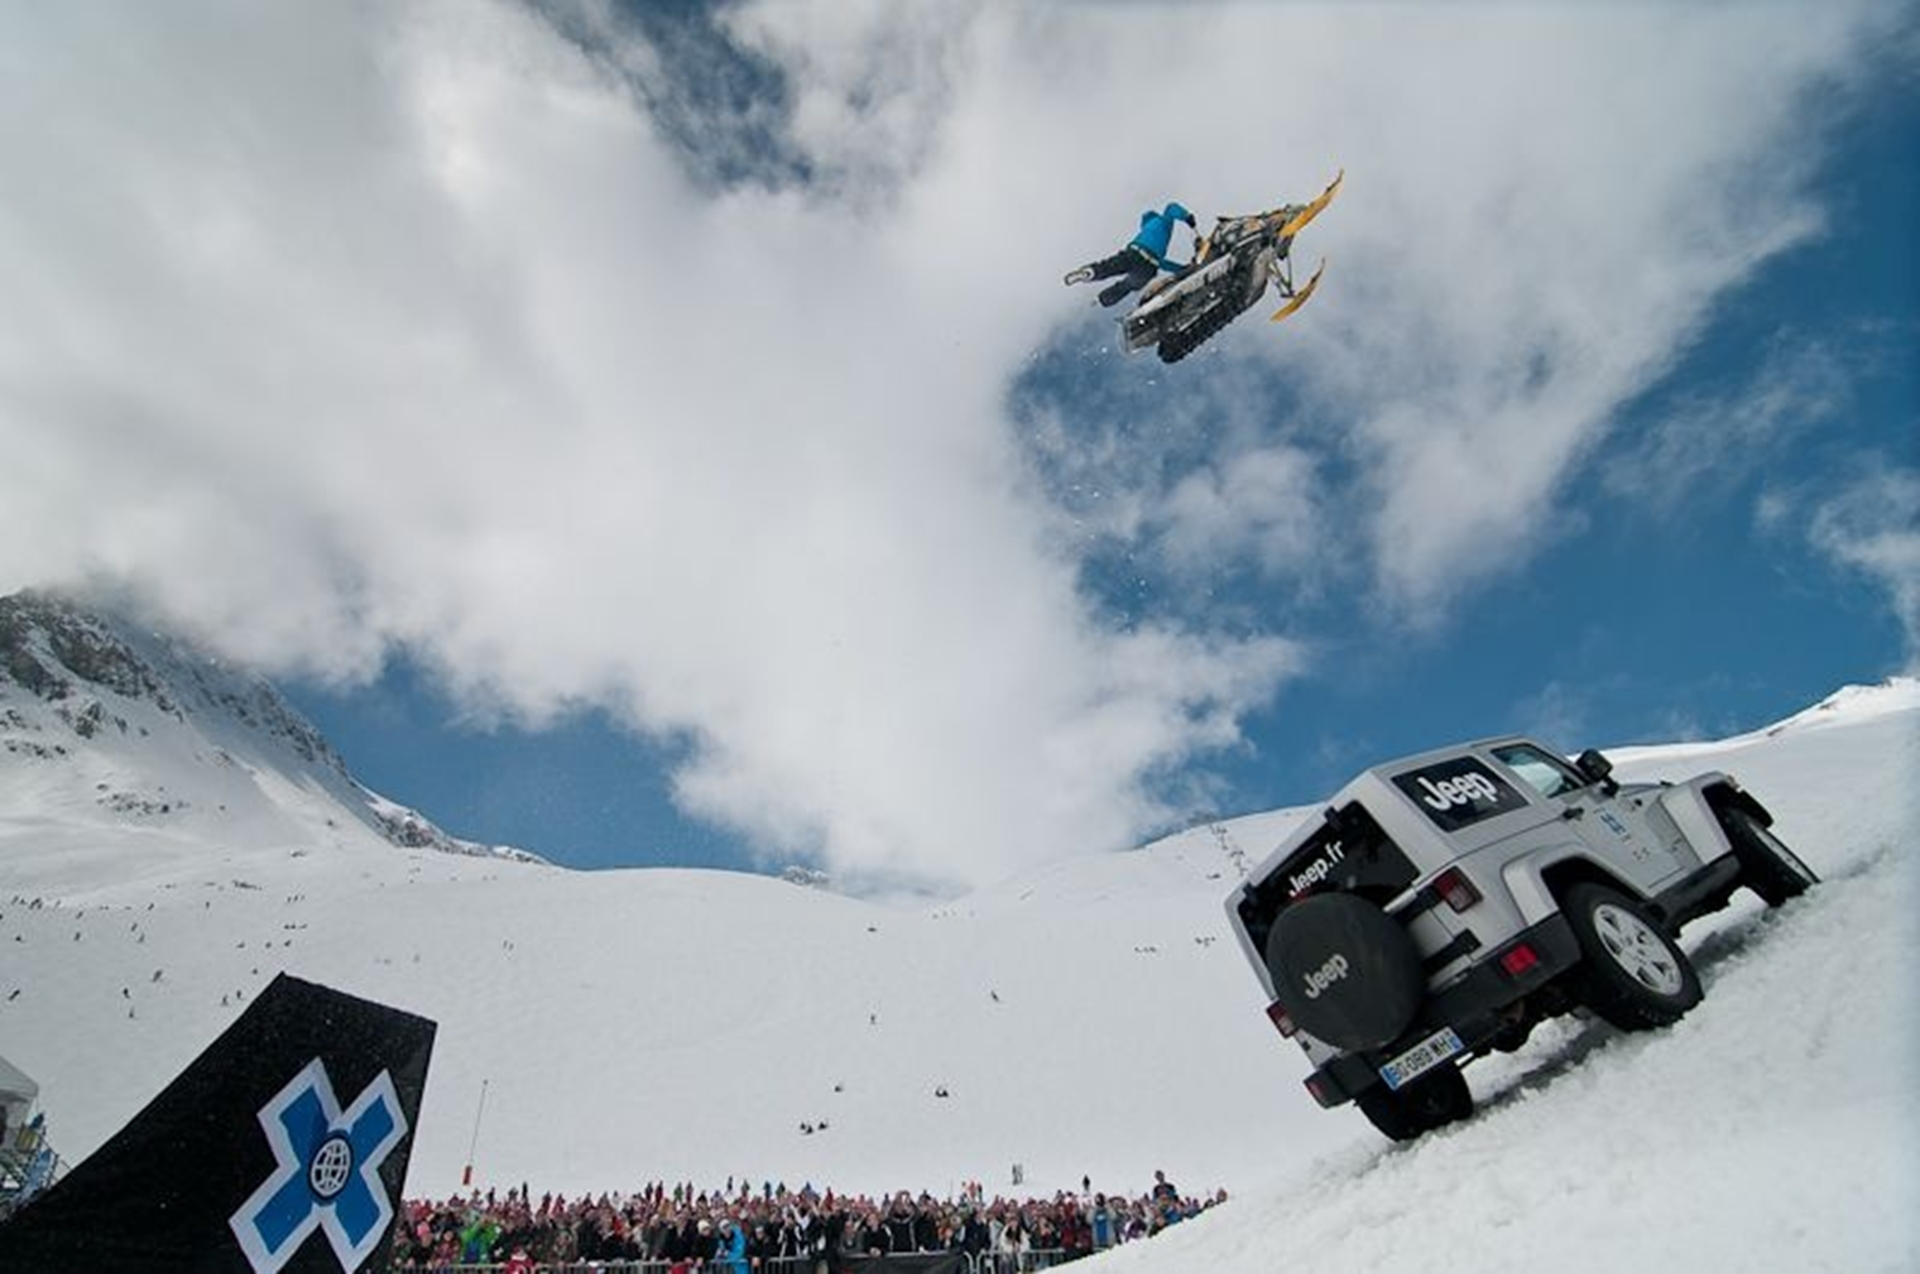 Jeep Winter X-Games